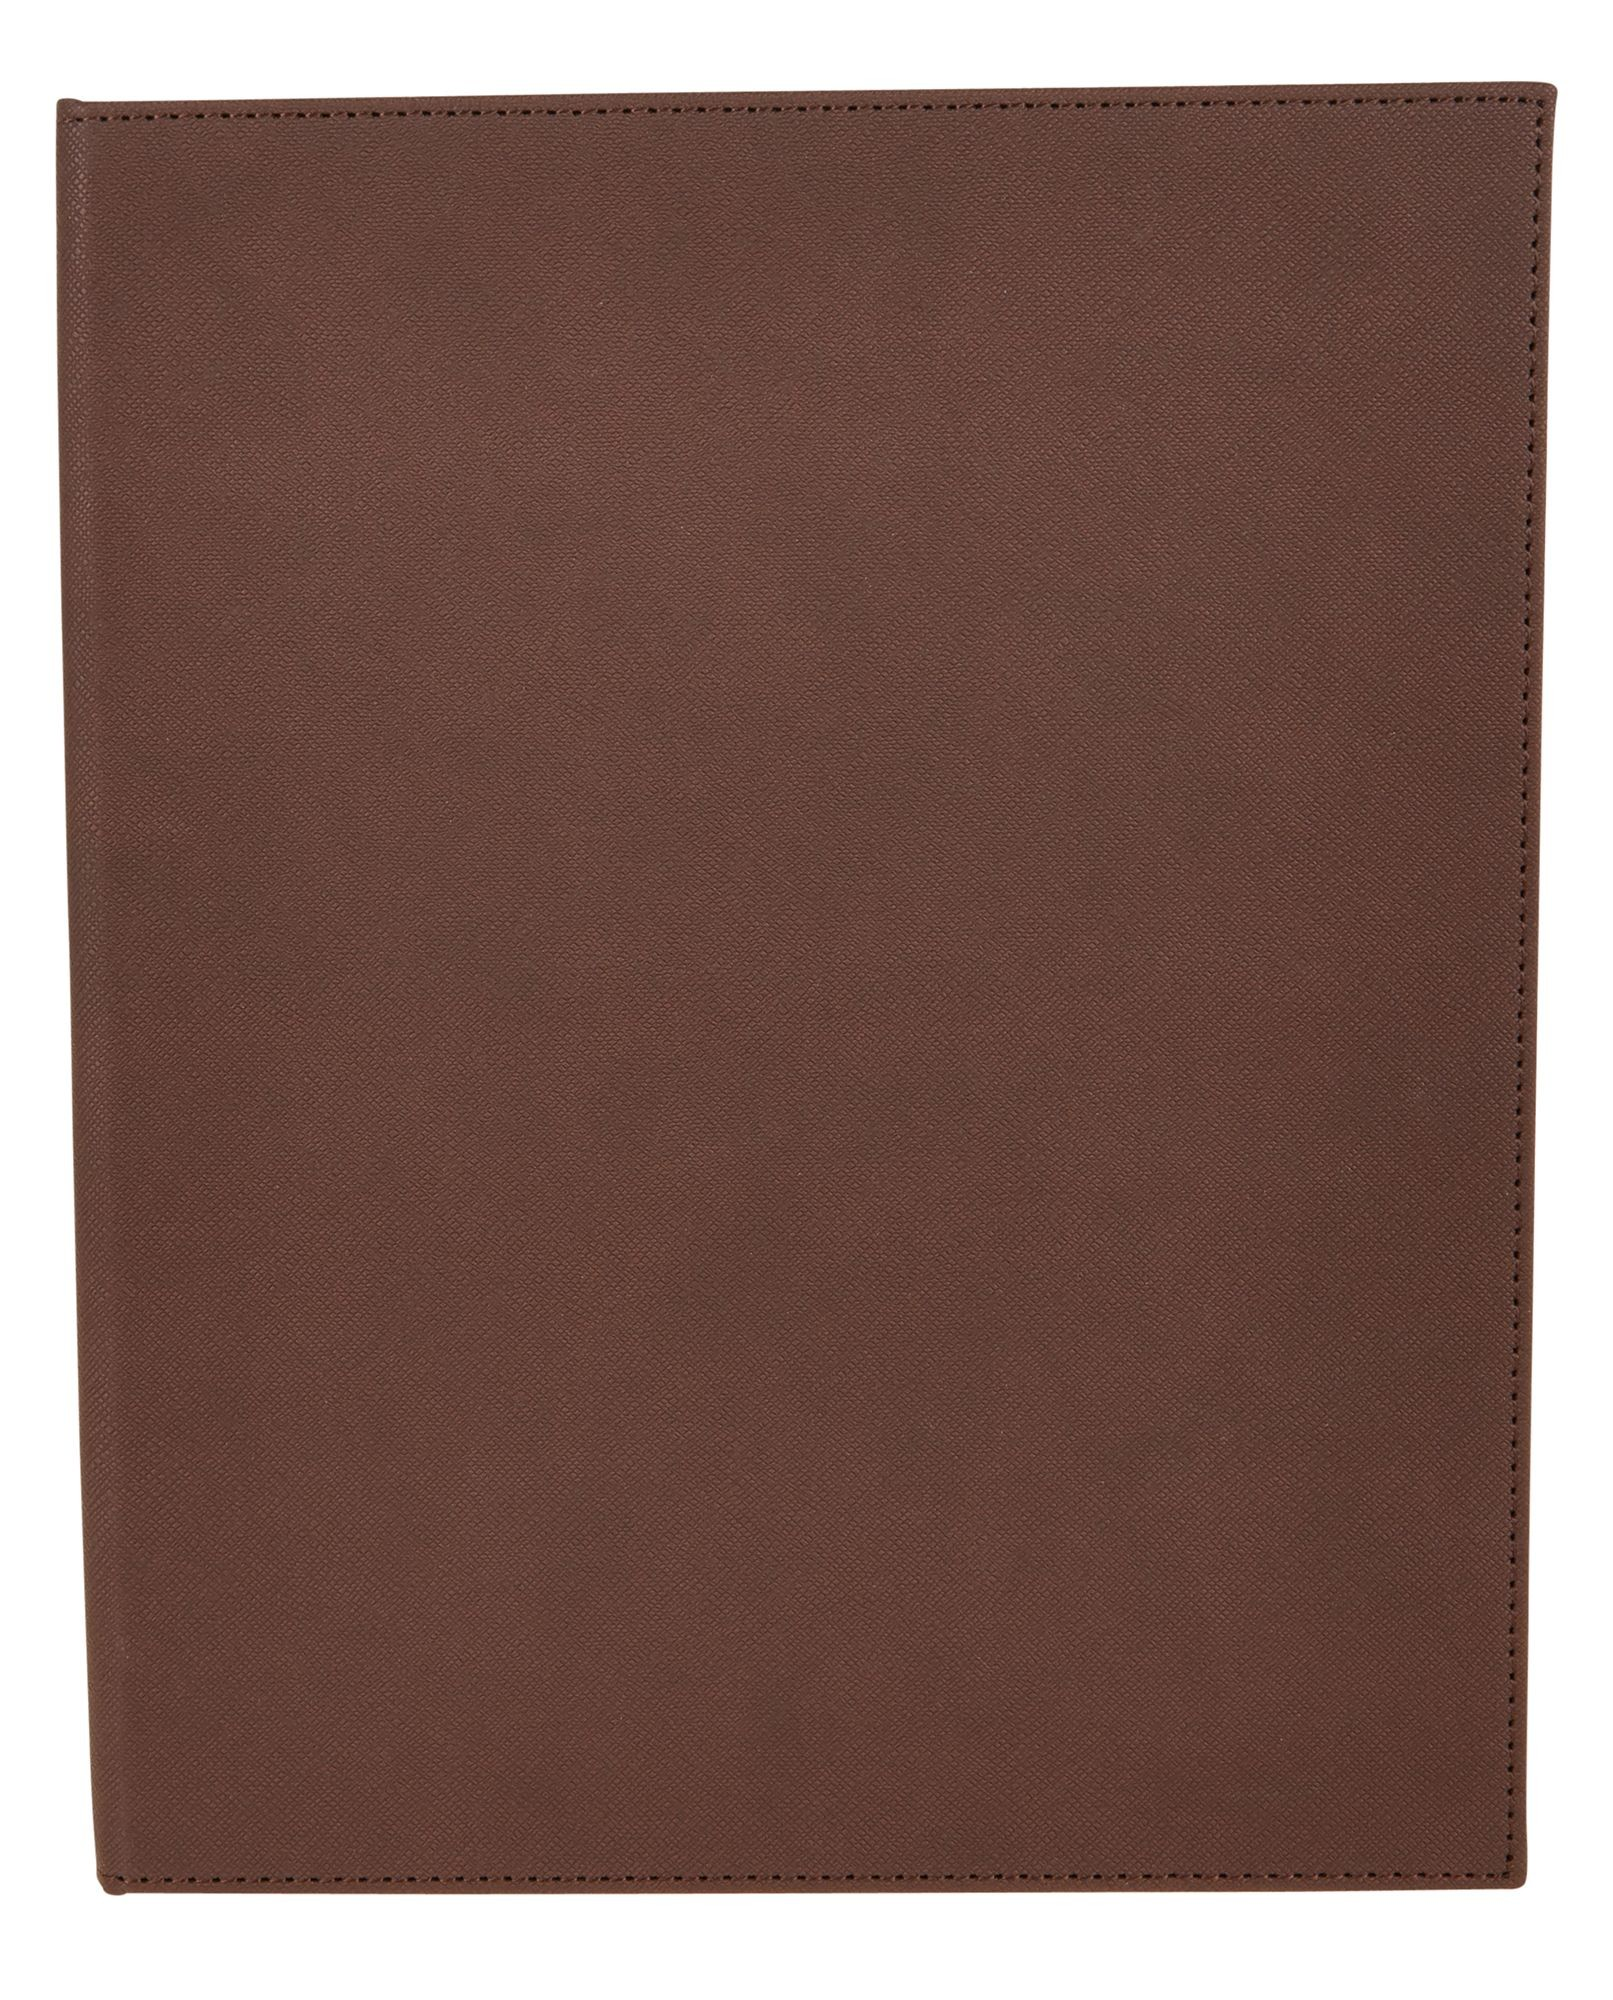 "Winco LMD-811BN 8-1/2"" x 11"" Brown Leatherette Two Panel Menu Cover"